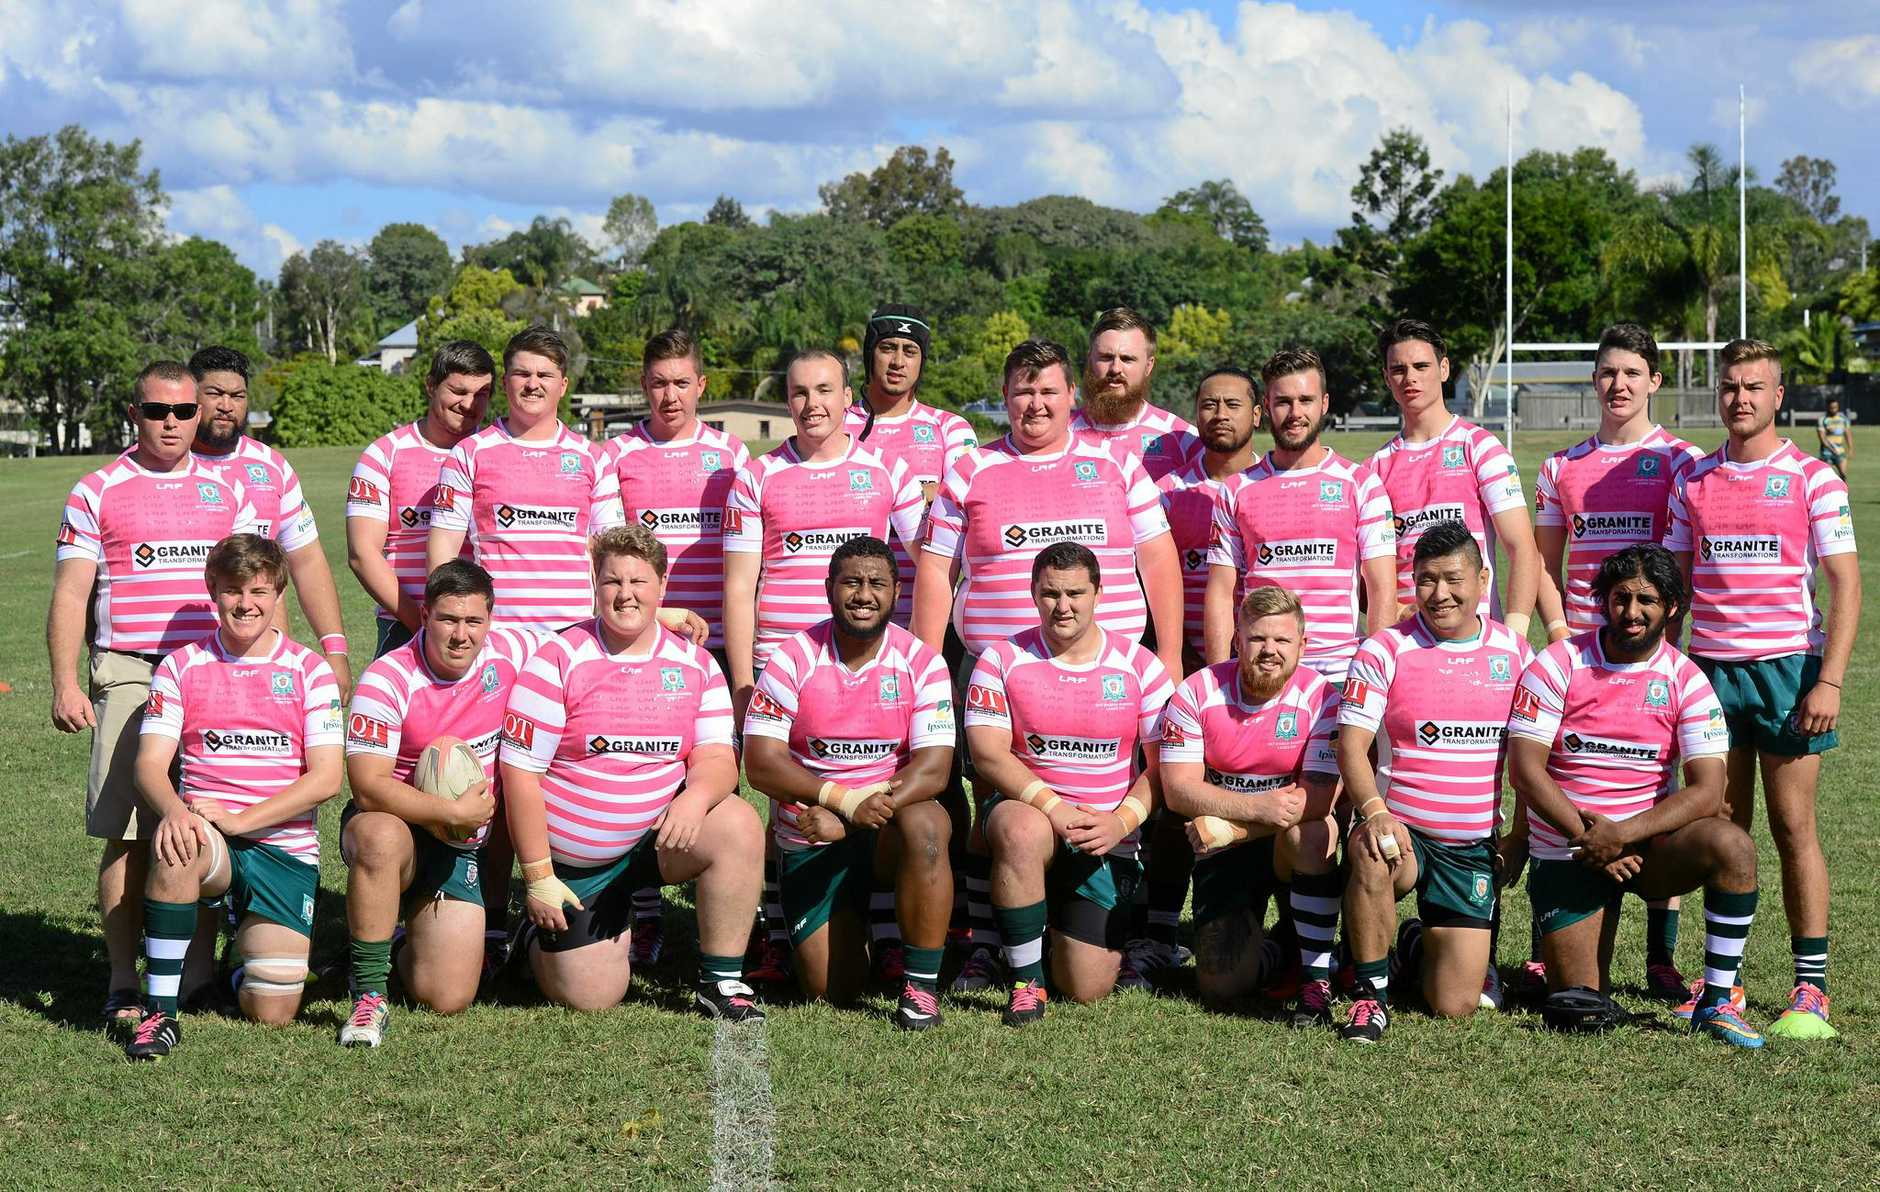 The Ipswich Rangers Rugby Union side in pink jerseys for Ladies Day at Woodend Park.